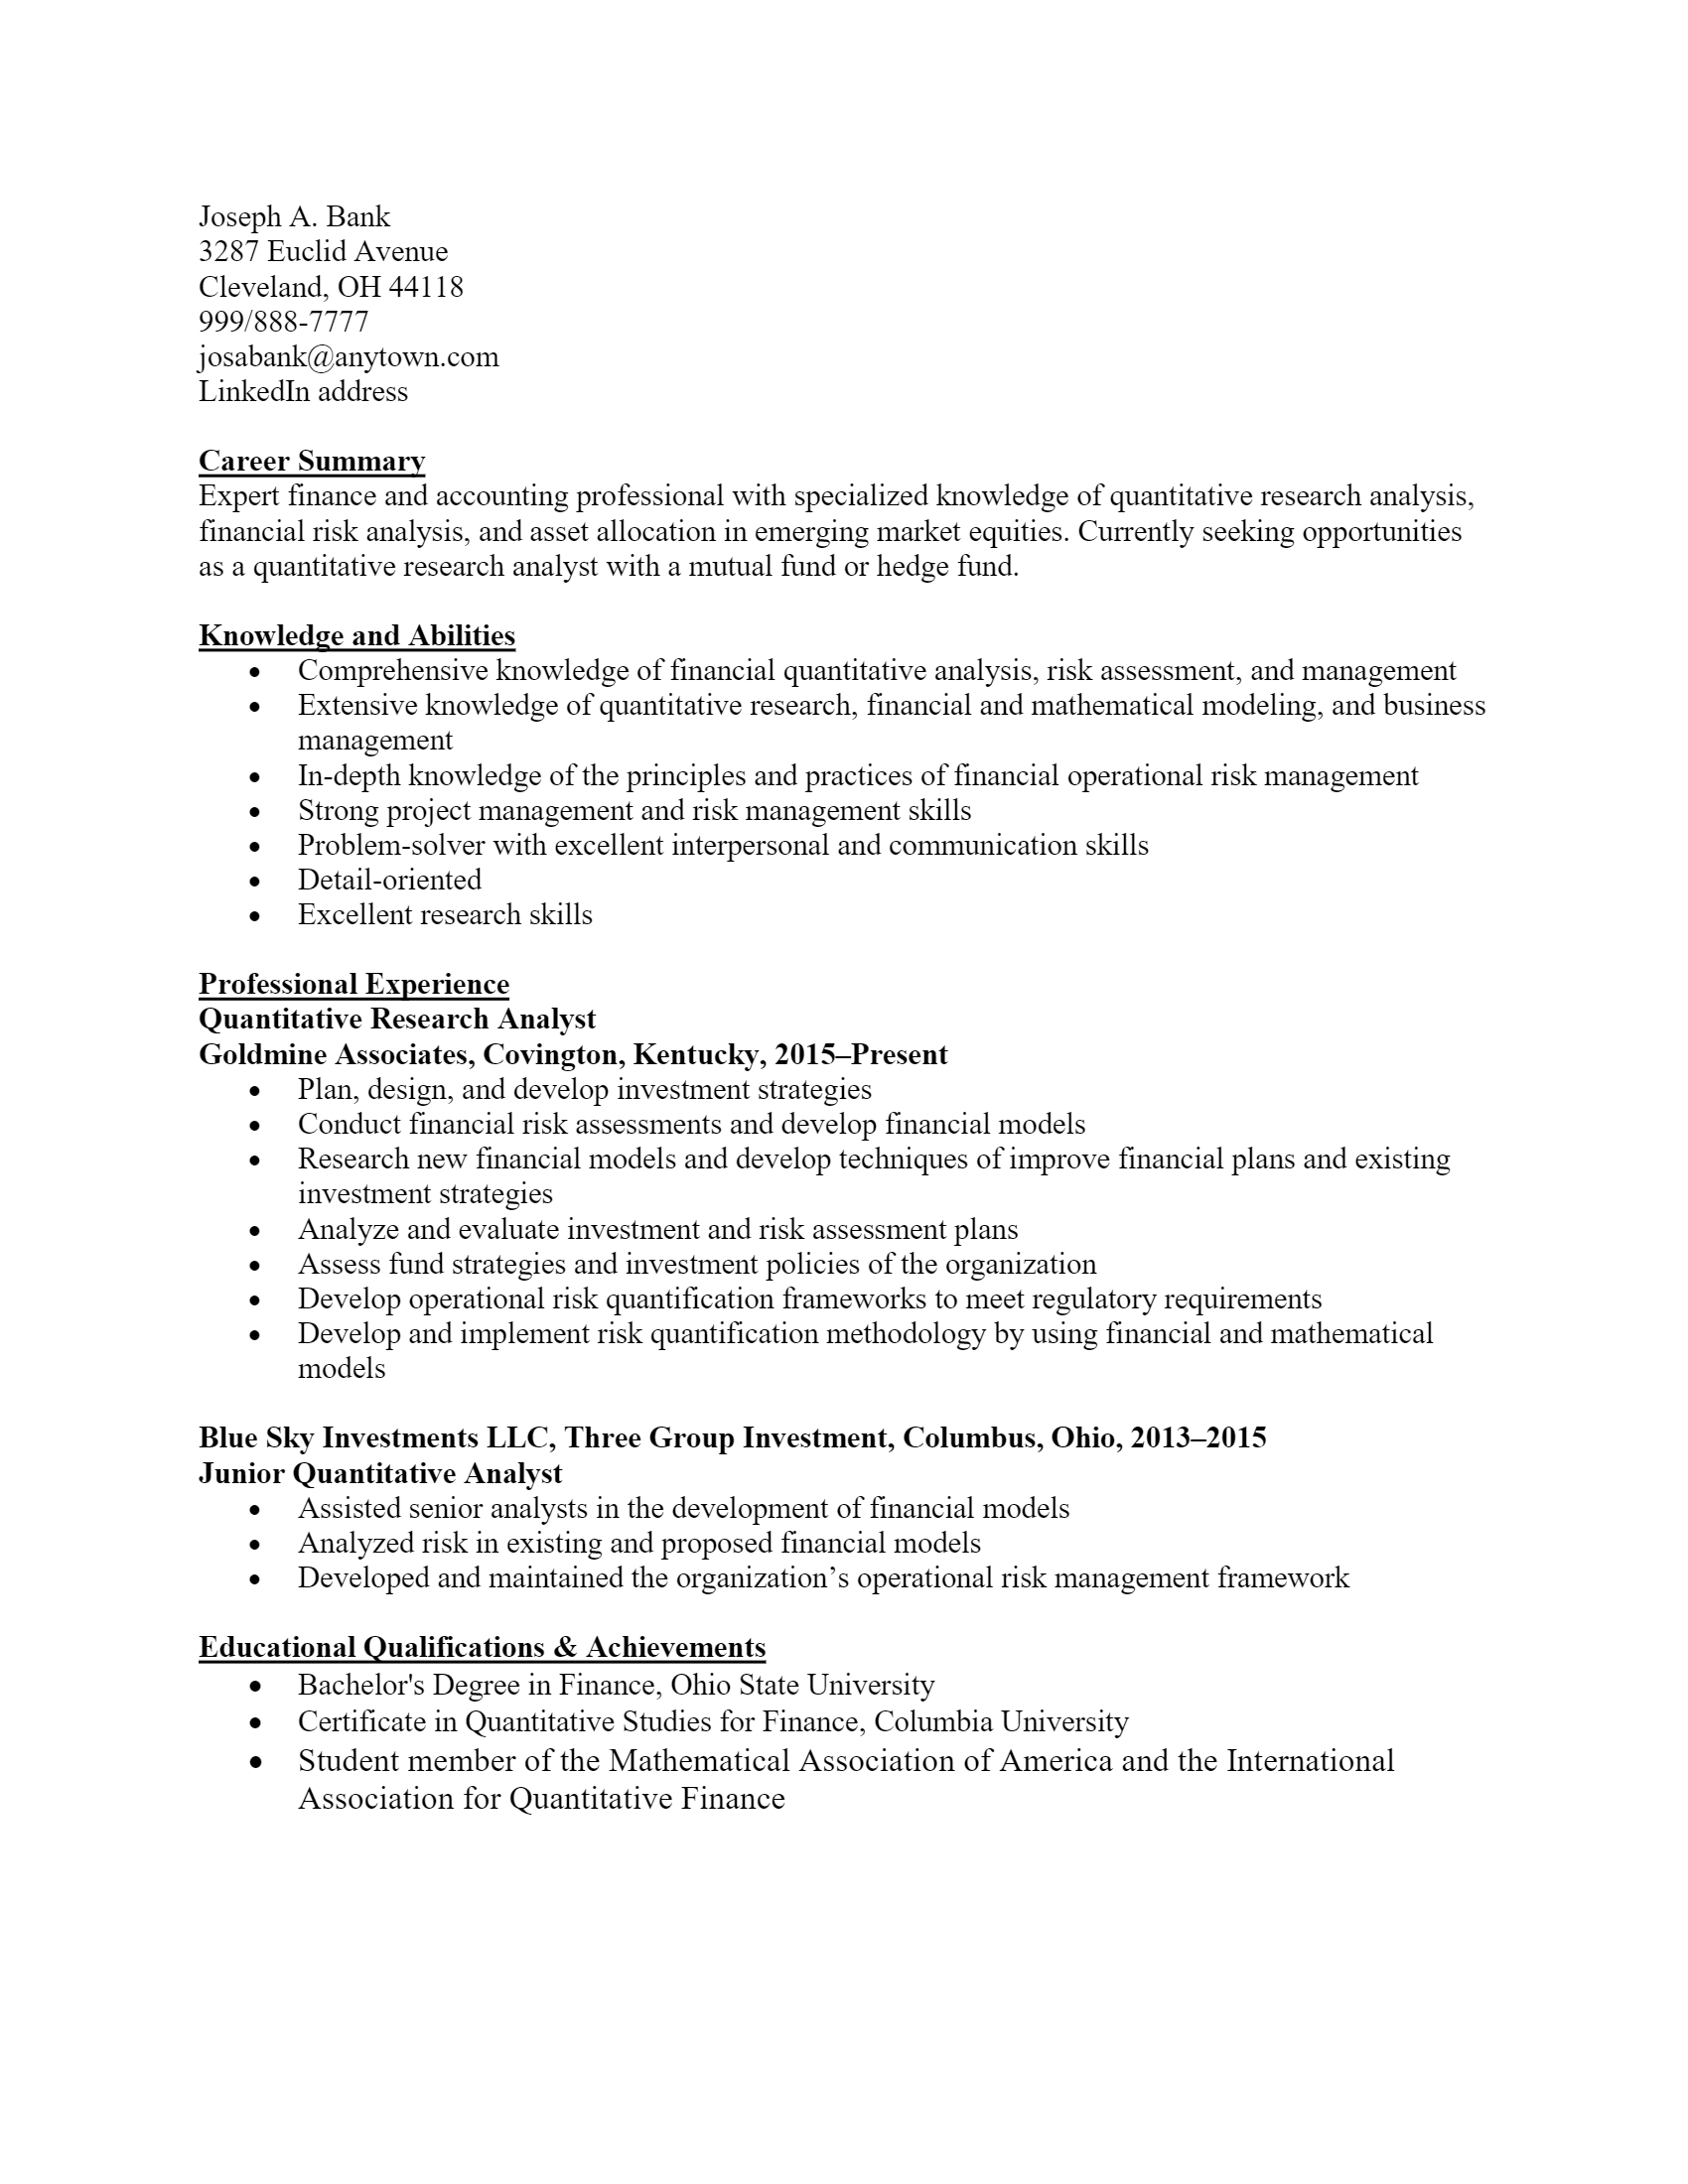 Research Analyst Resume .Docx (Word)